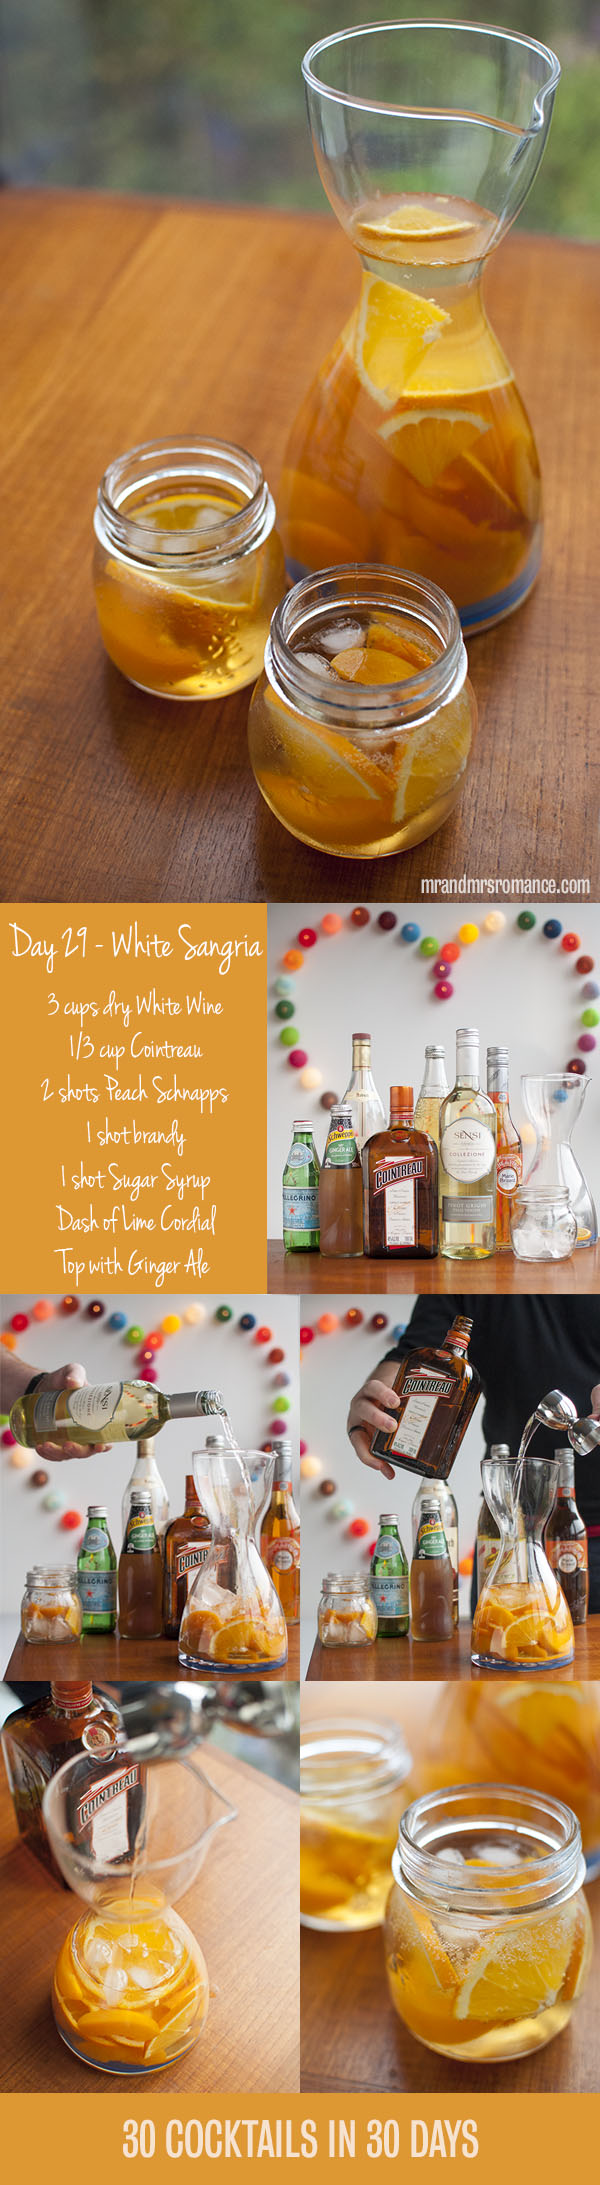 Mr and Mrs Romance - Day 29 - White Sangria Cocktail Recipe